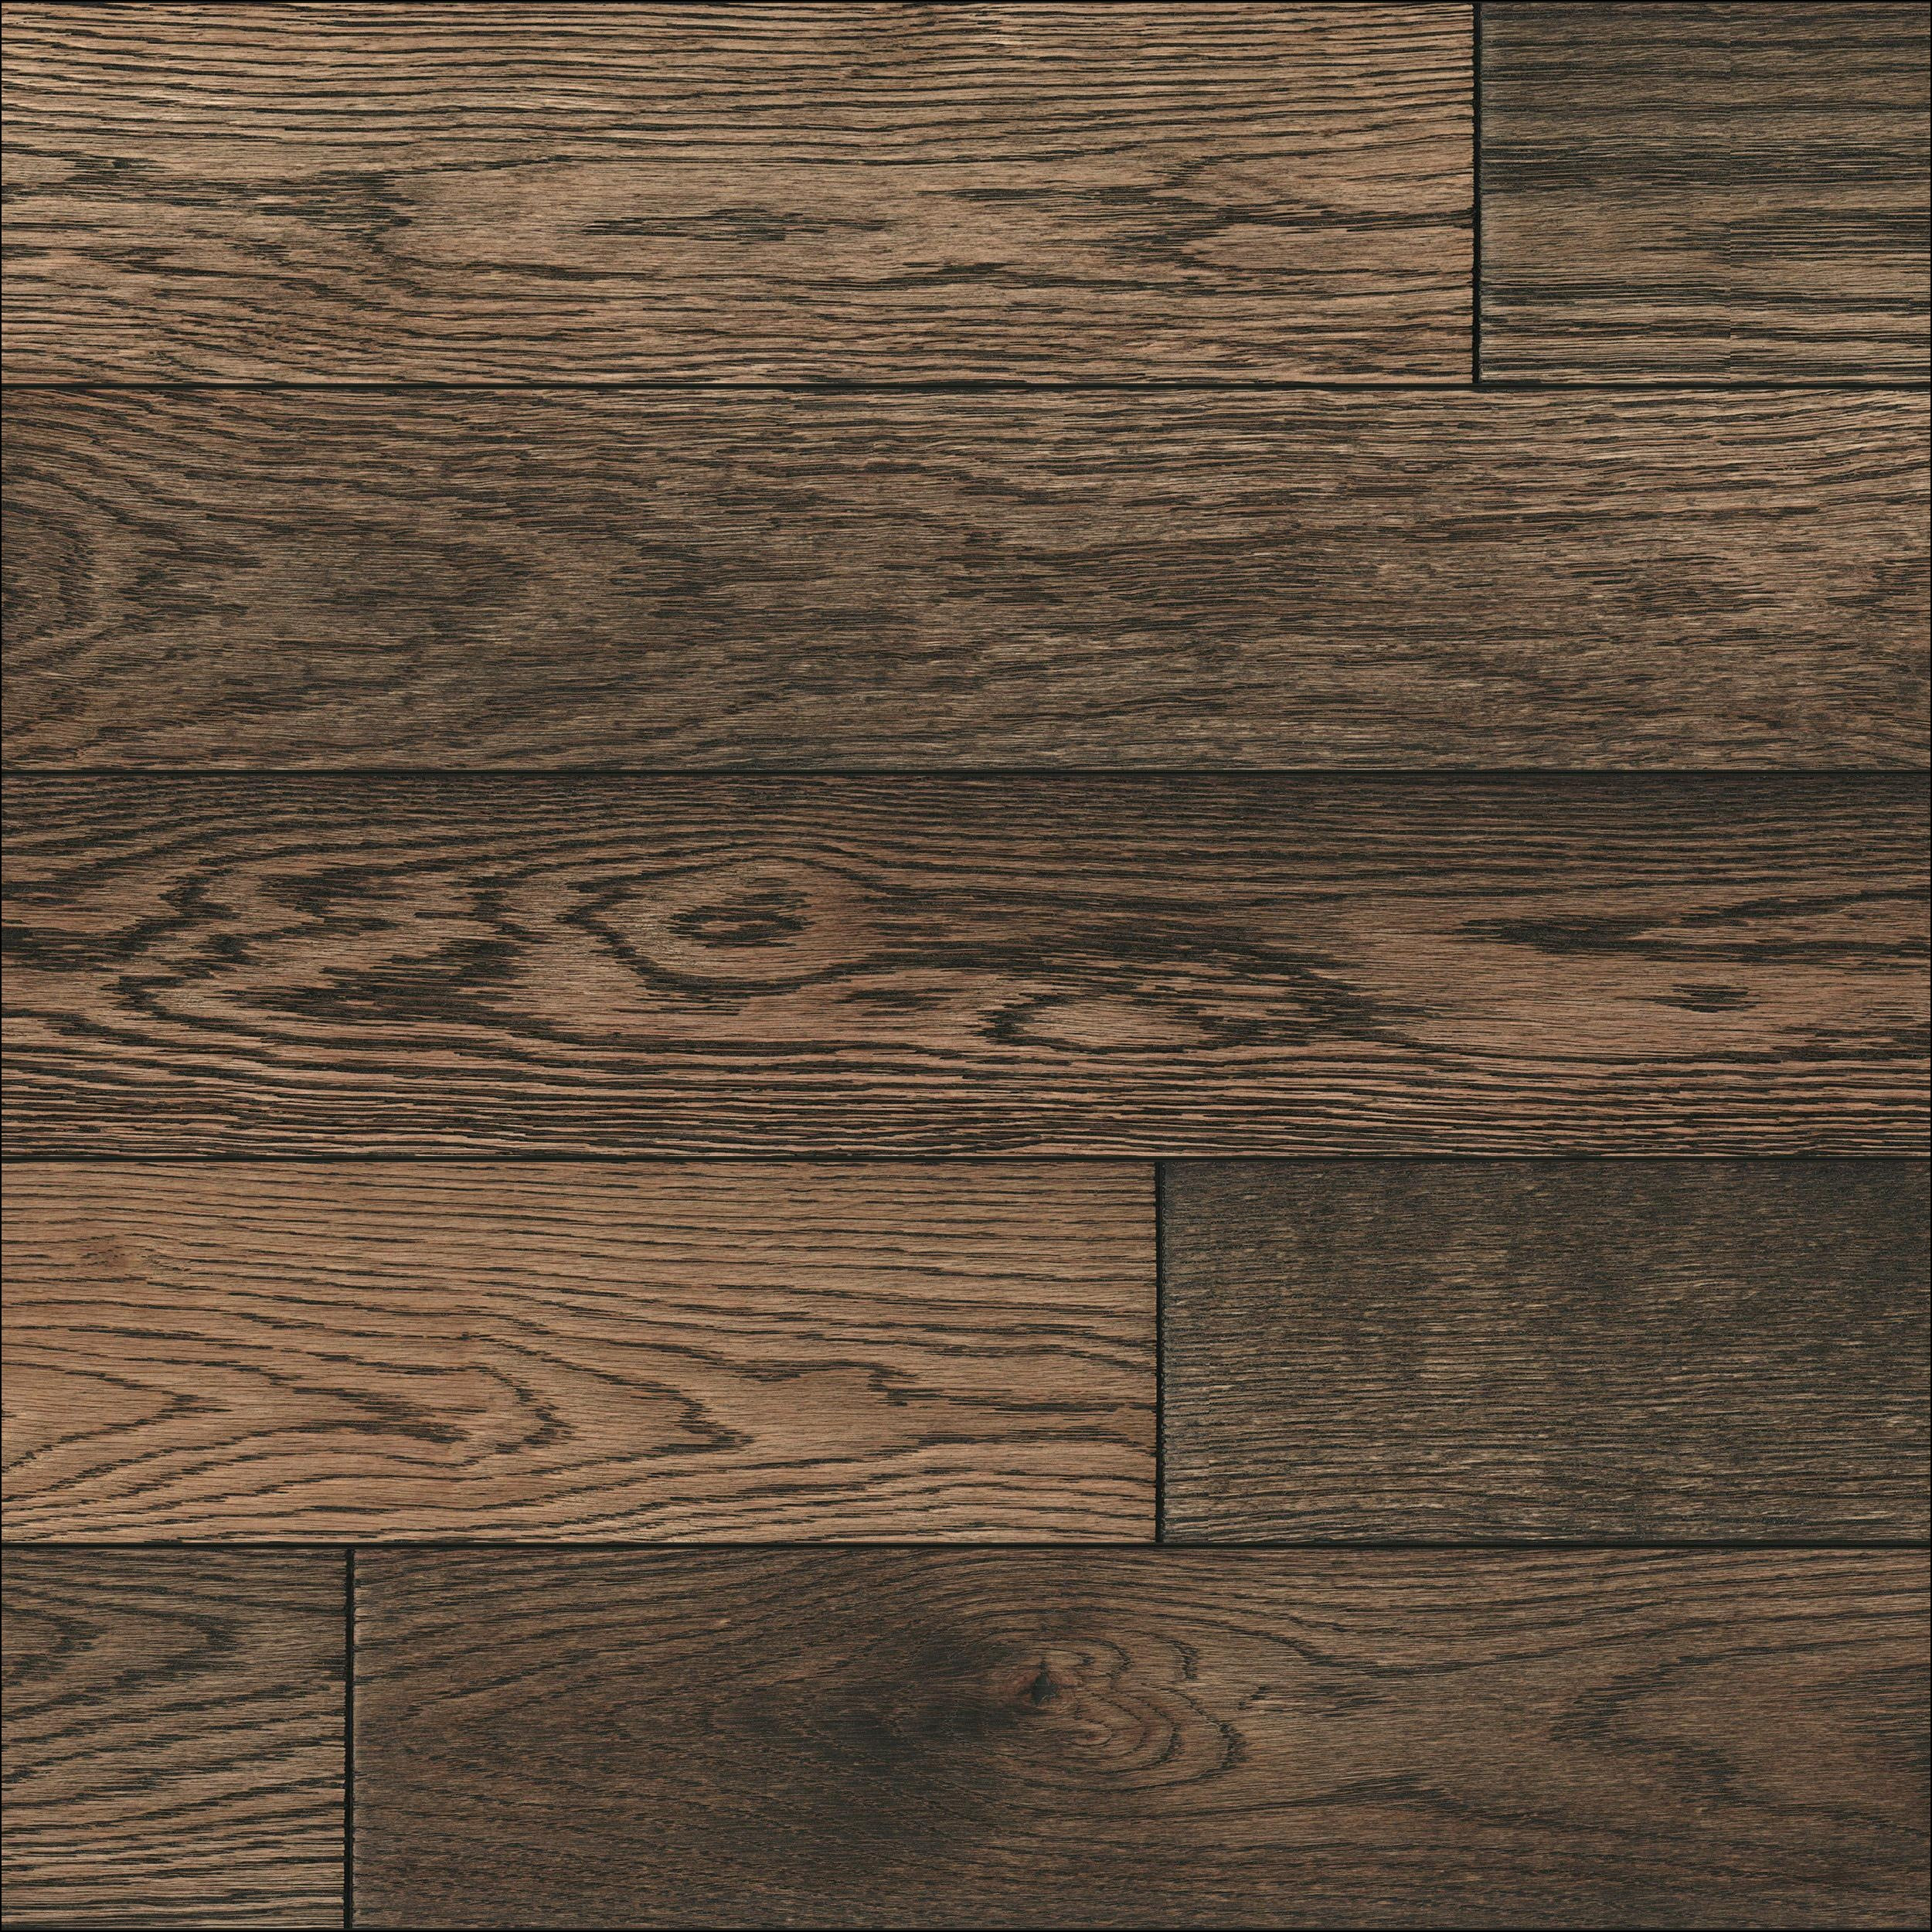 bruce hardwood flooring installation guide of wide plank flooring ideas for wide plank dark wood flooring timber hardwood wheat 5 wide solid hardwood flooring of wide